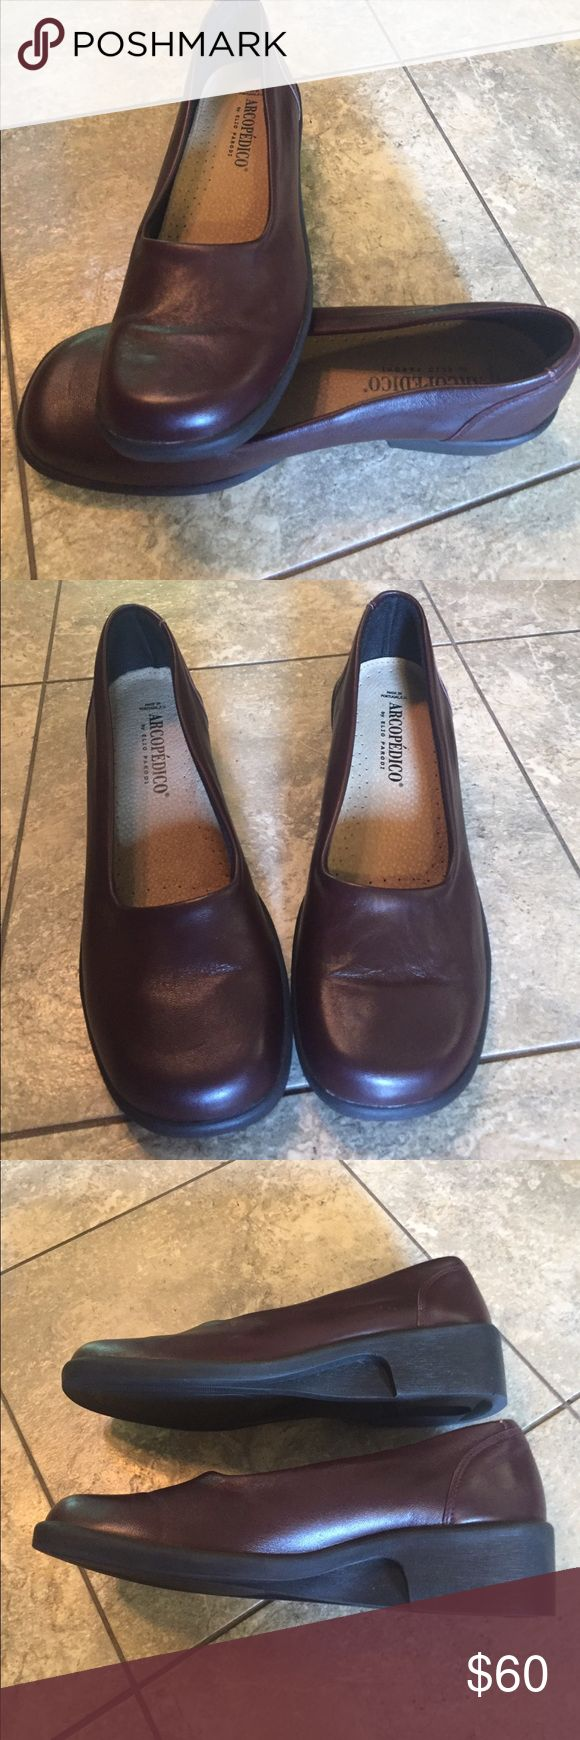 Arcopedico brown loafers sz 39 Nice Arcopedico brown loafers sz 9.  Great condition!!! Arcopedico Shoes Flats & Loafers